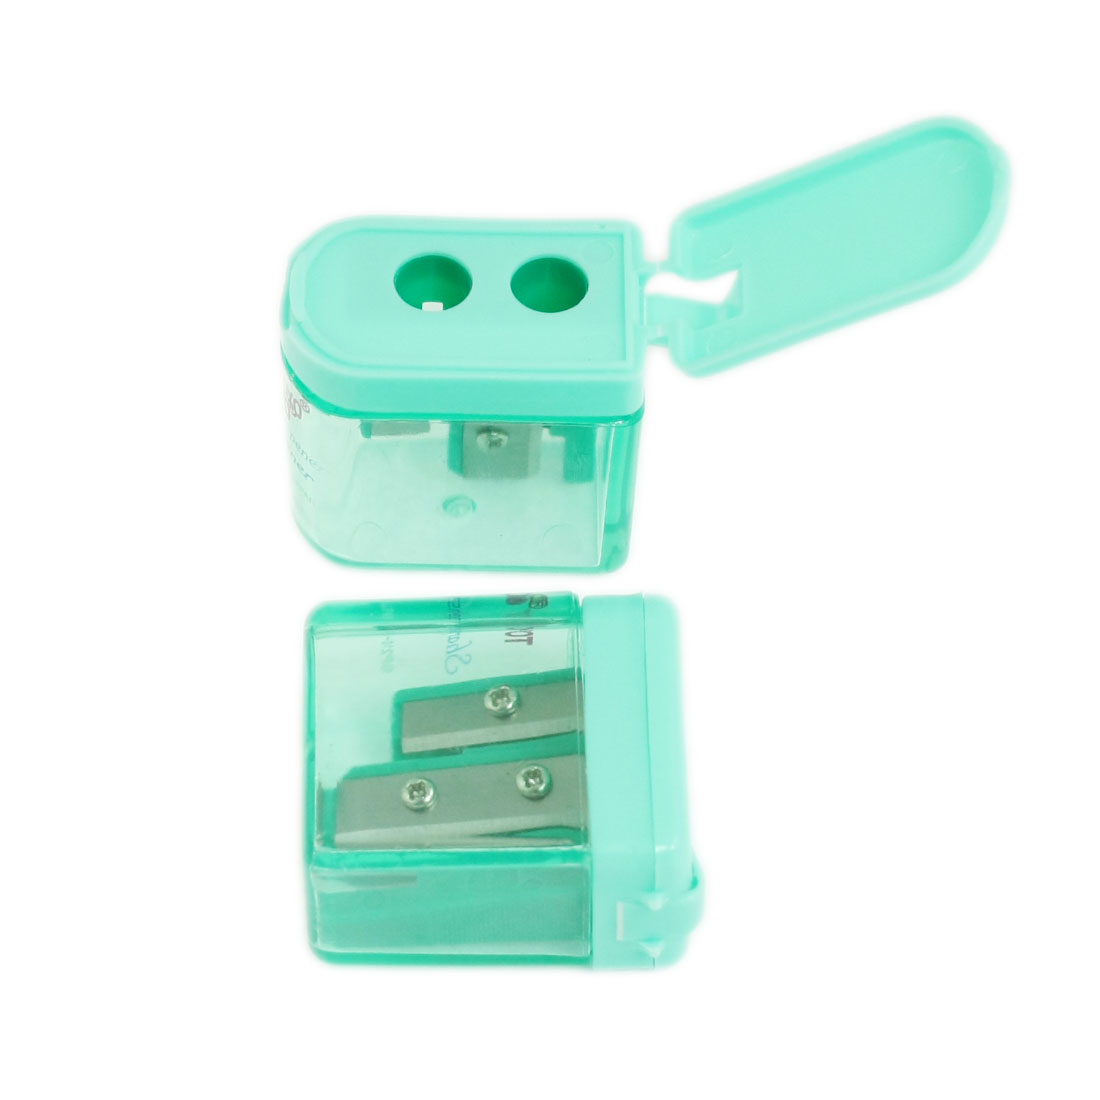 Flip Cap Dual Hole Plastic Pencil Sharpener Green 2 Pcs